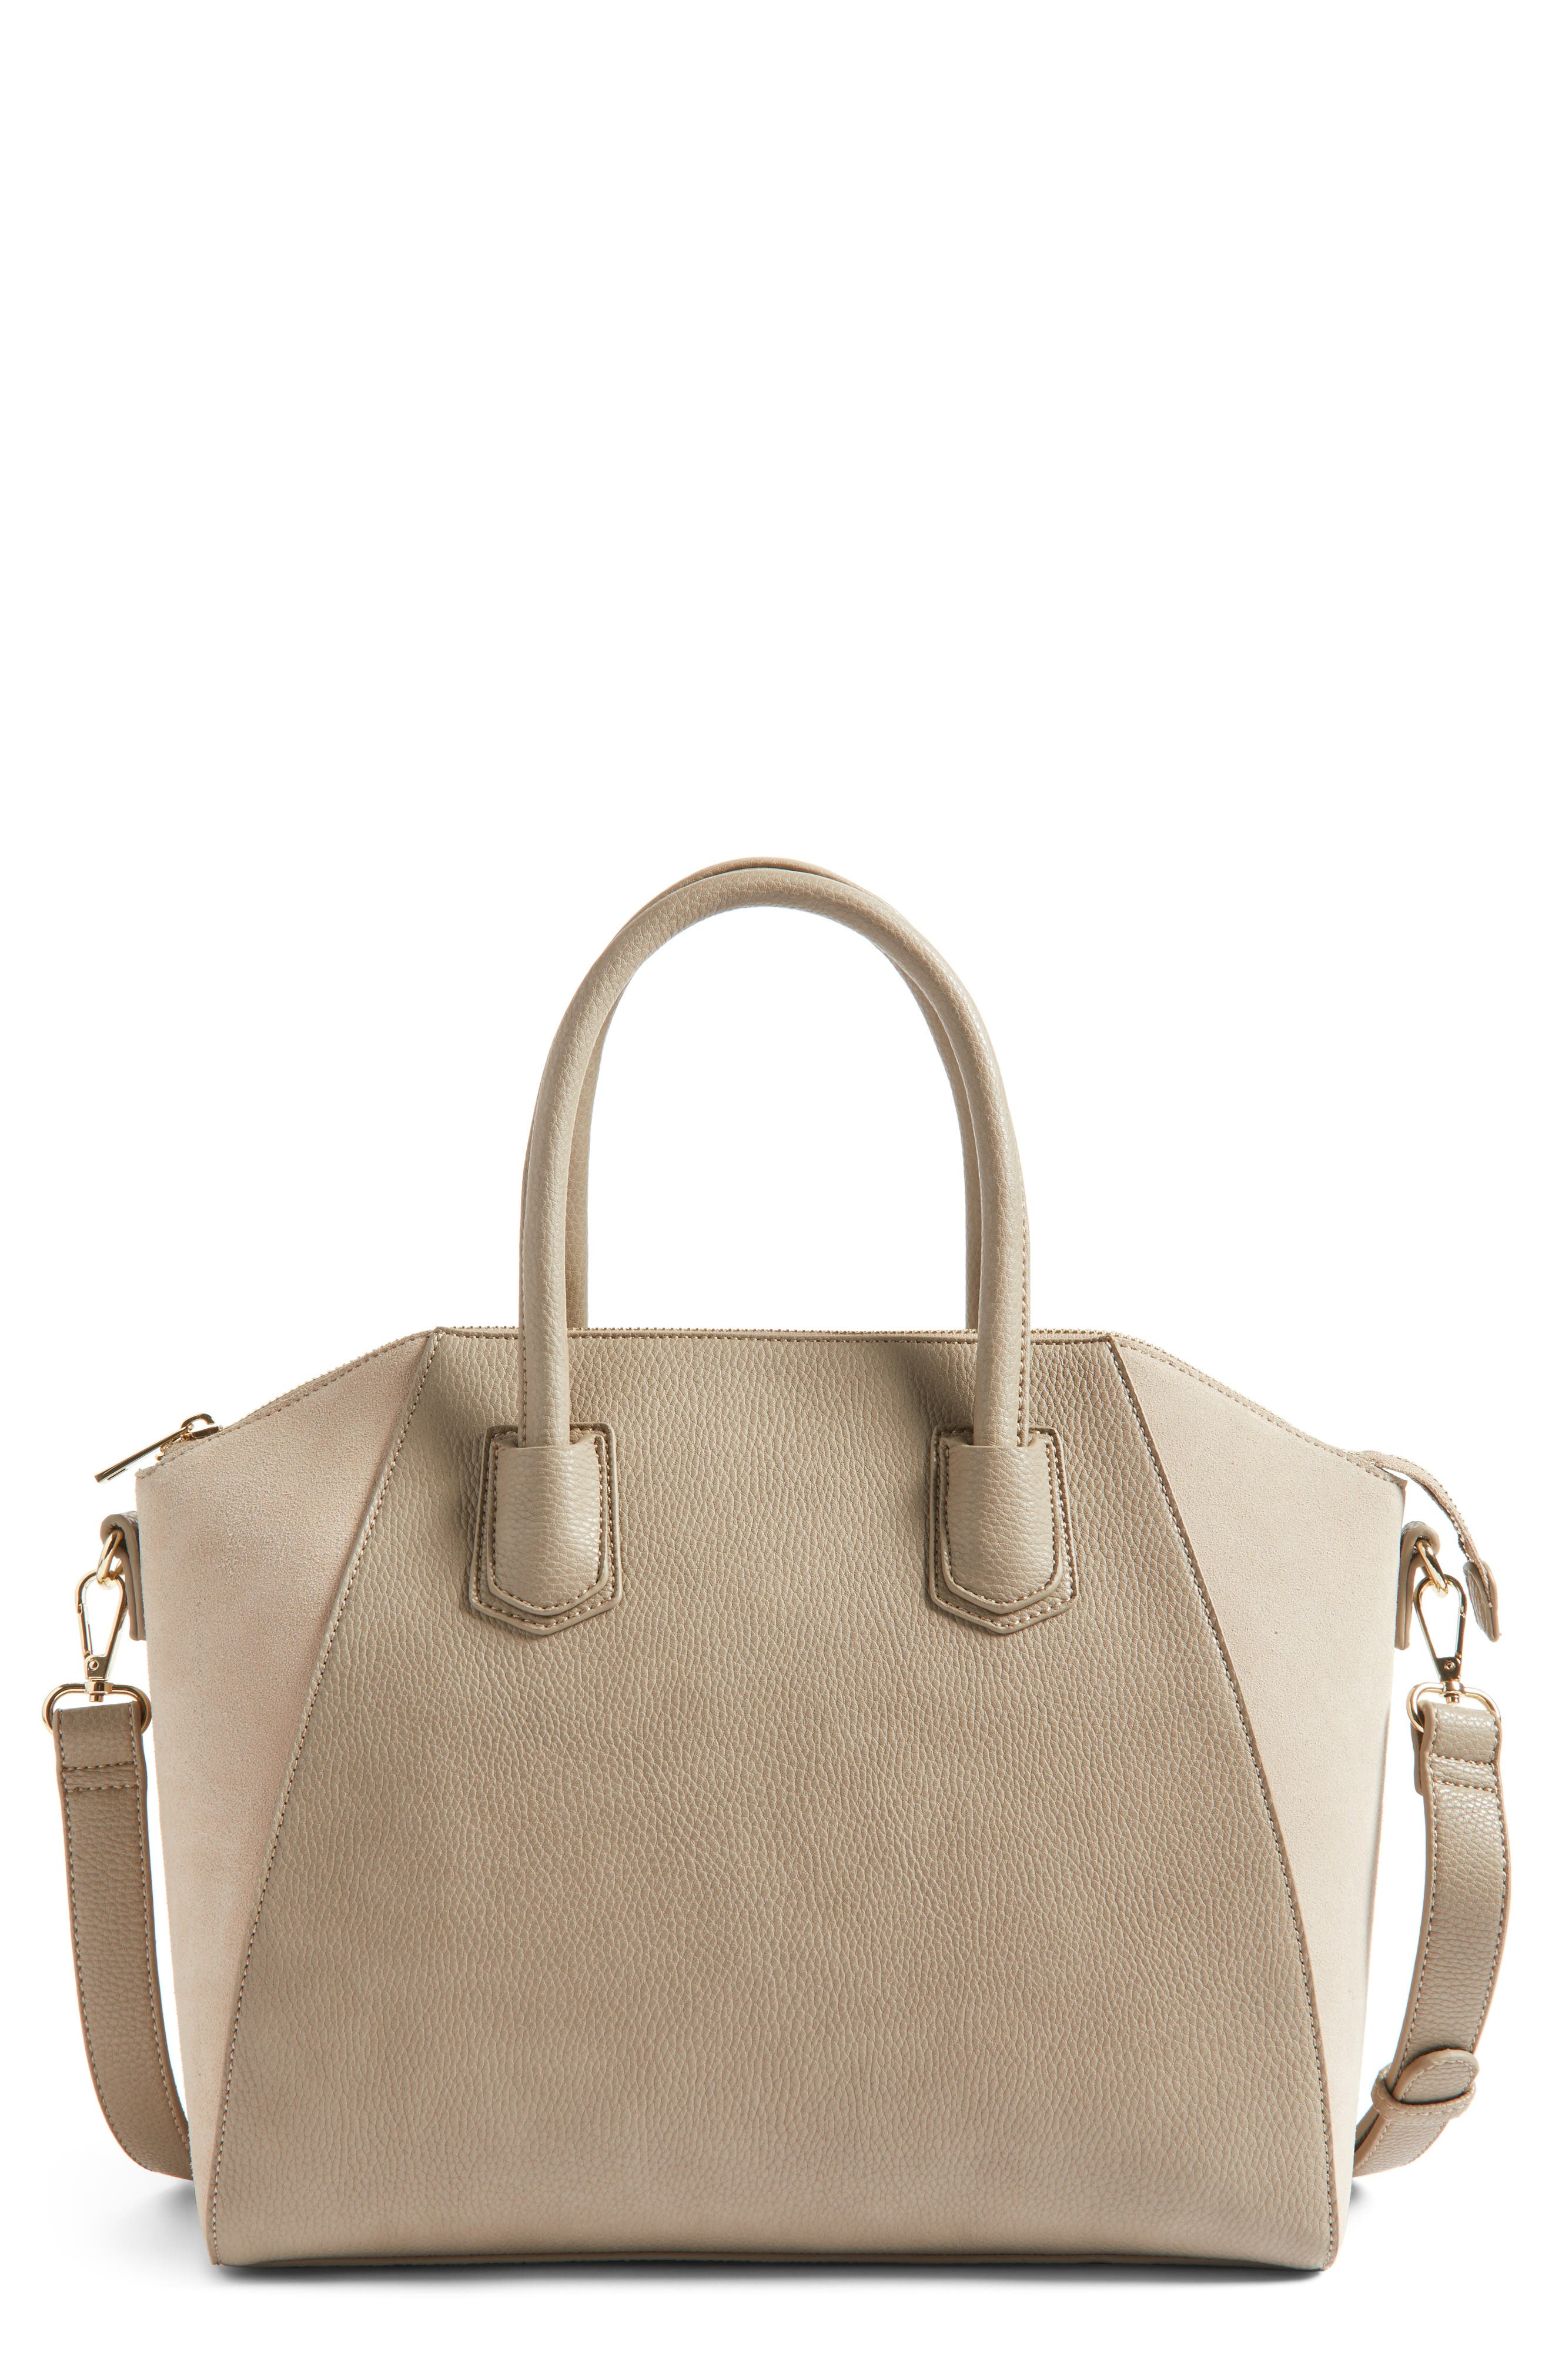 Main Image - Sole Society Mikayla Faux Leather & Suede Satchel